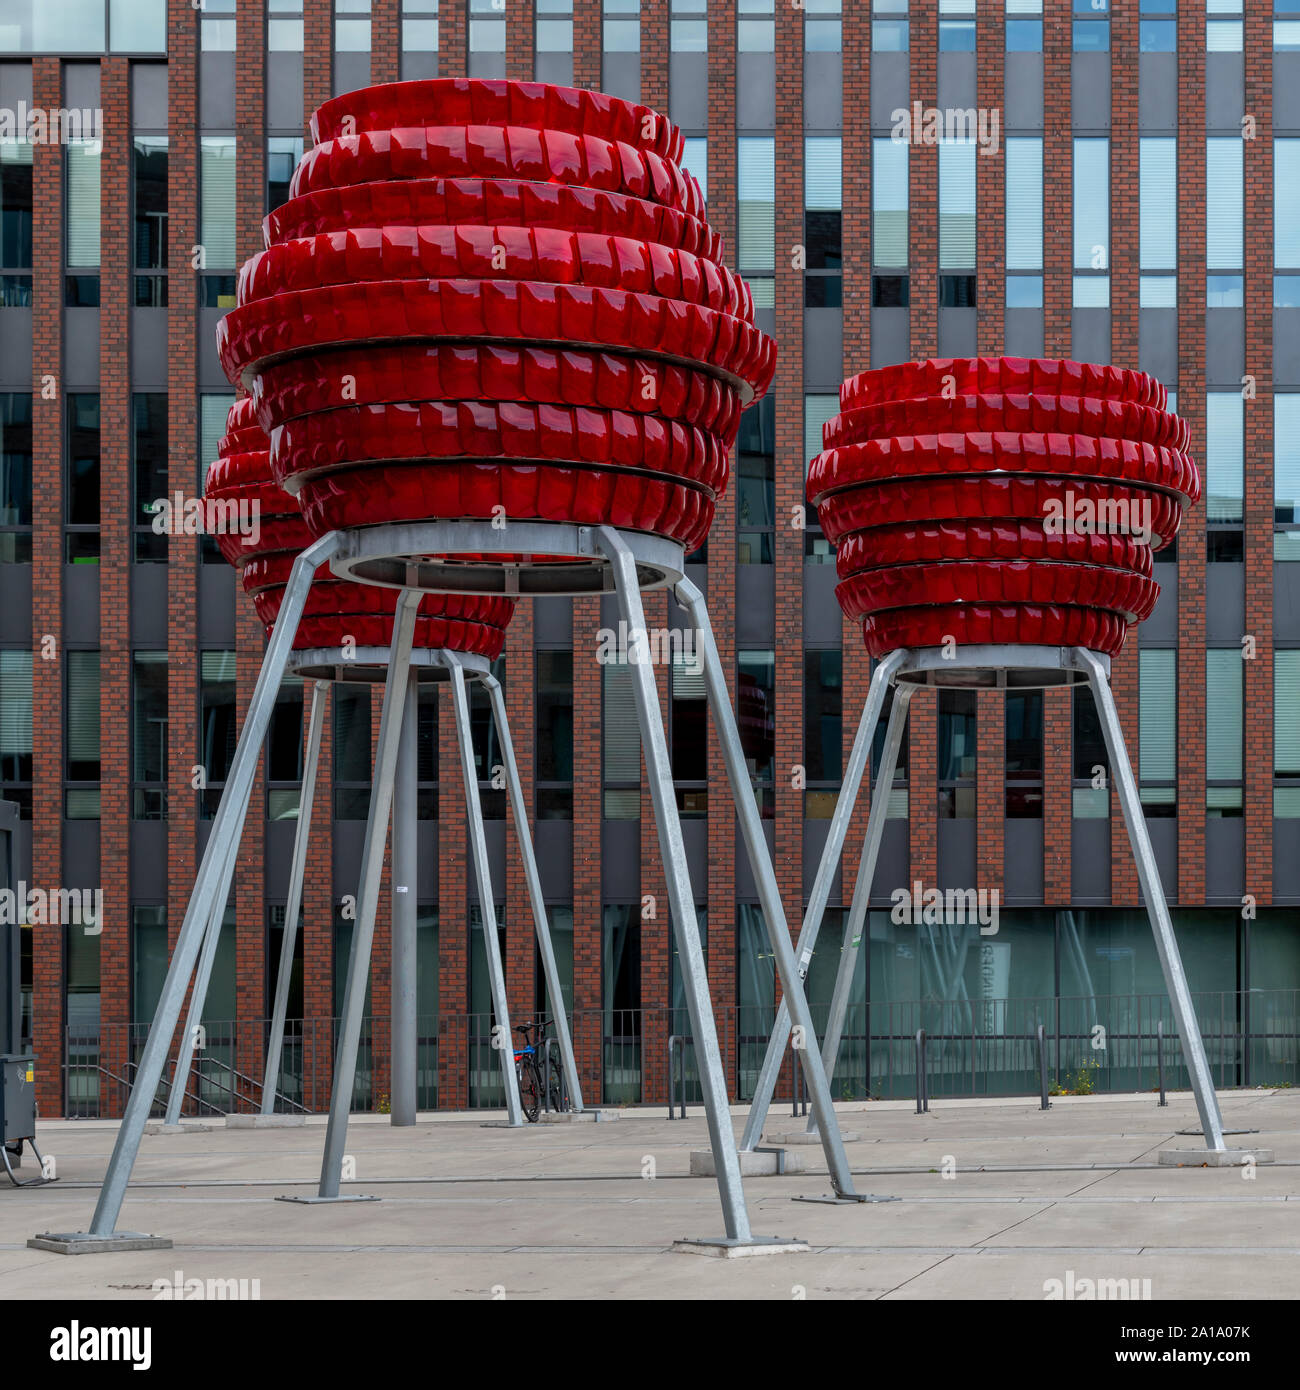 These amazing sculptures were made of red plastic car tail lights. By Wolfgang Winter and Berthold Hörbelt for the Dortmunder U, a converted  brewery. Stock Photo